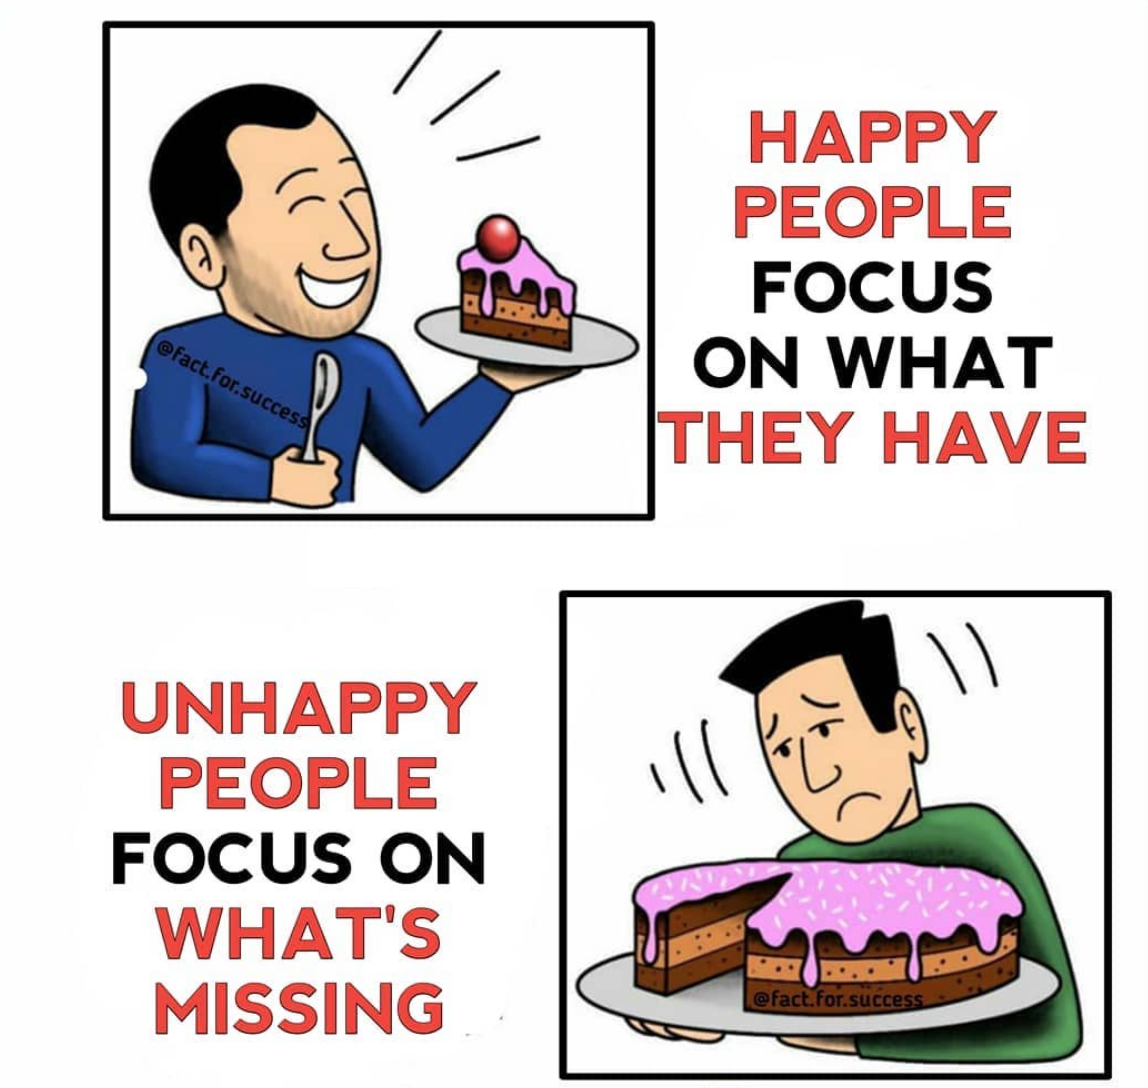 [Image] To be happy in life, you need to focus on what you have instead of complaining about what you're missing